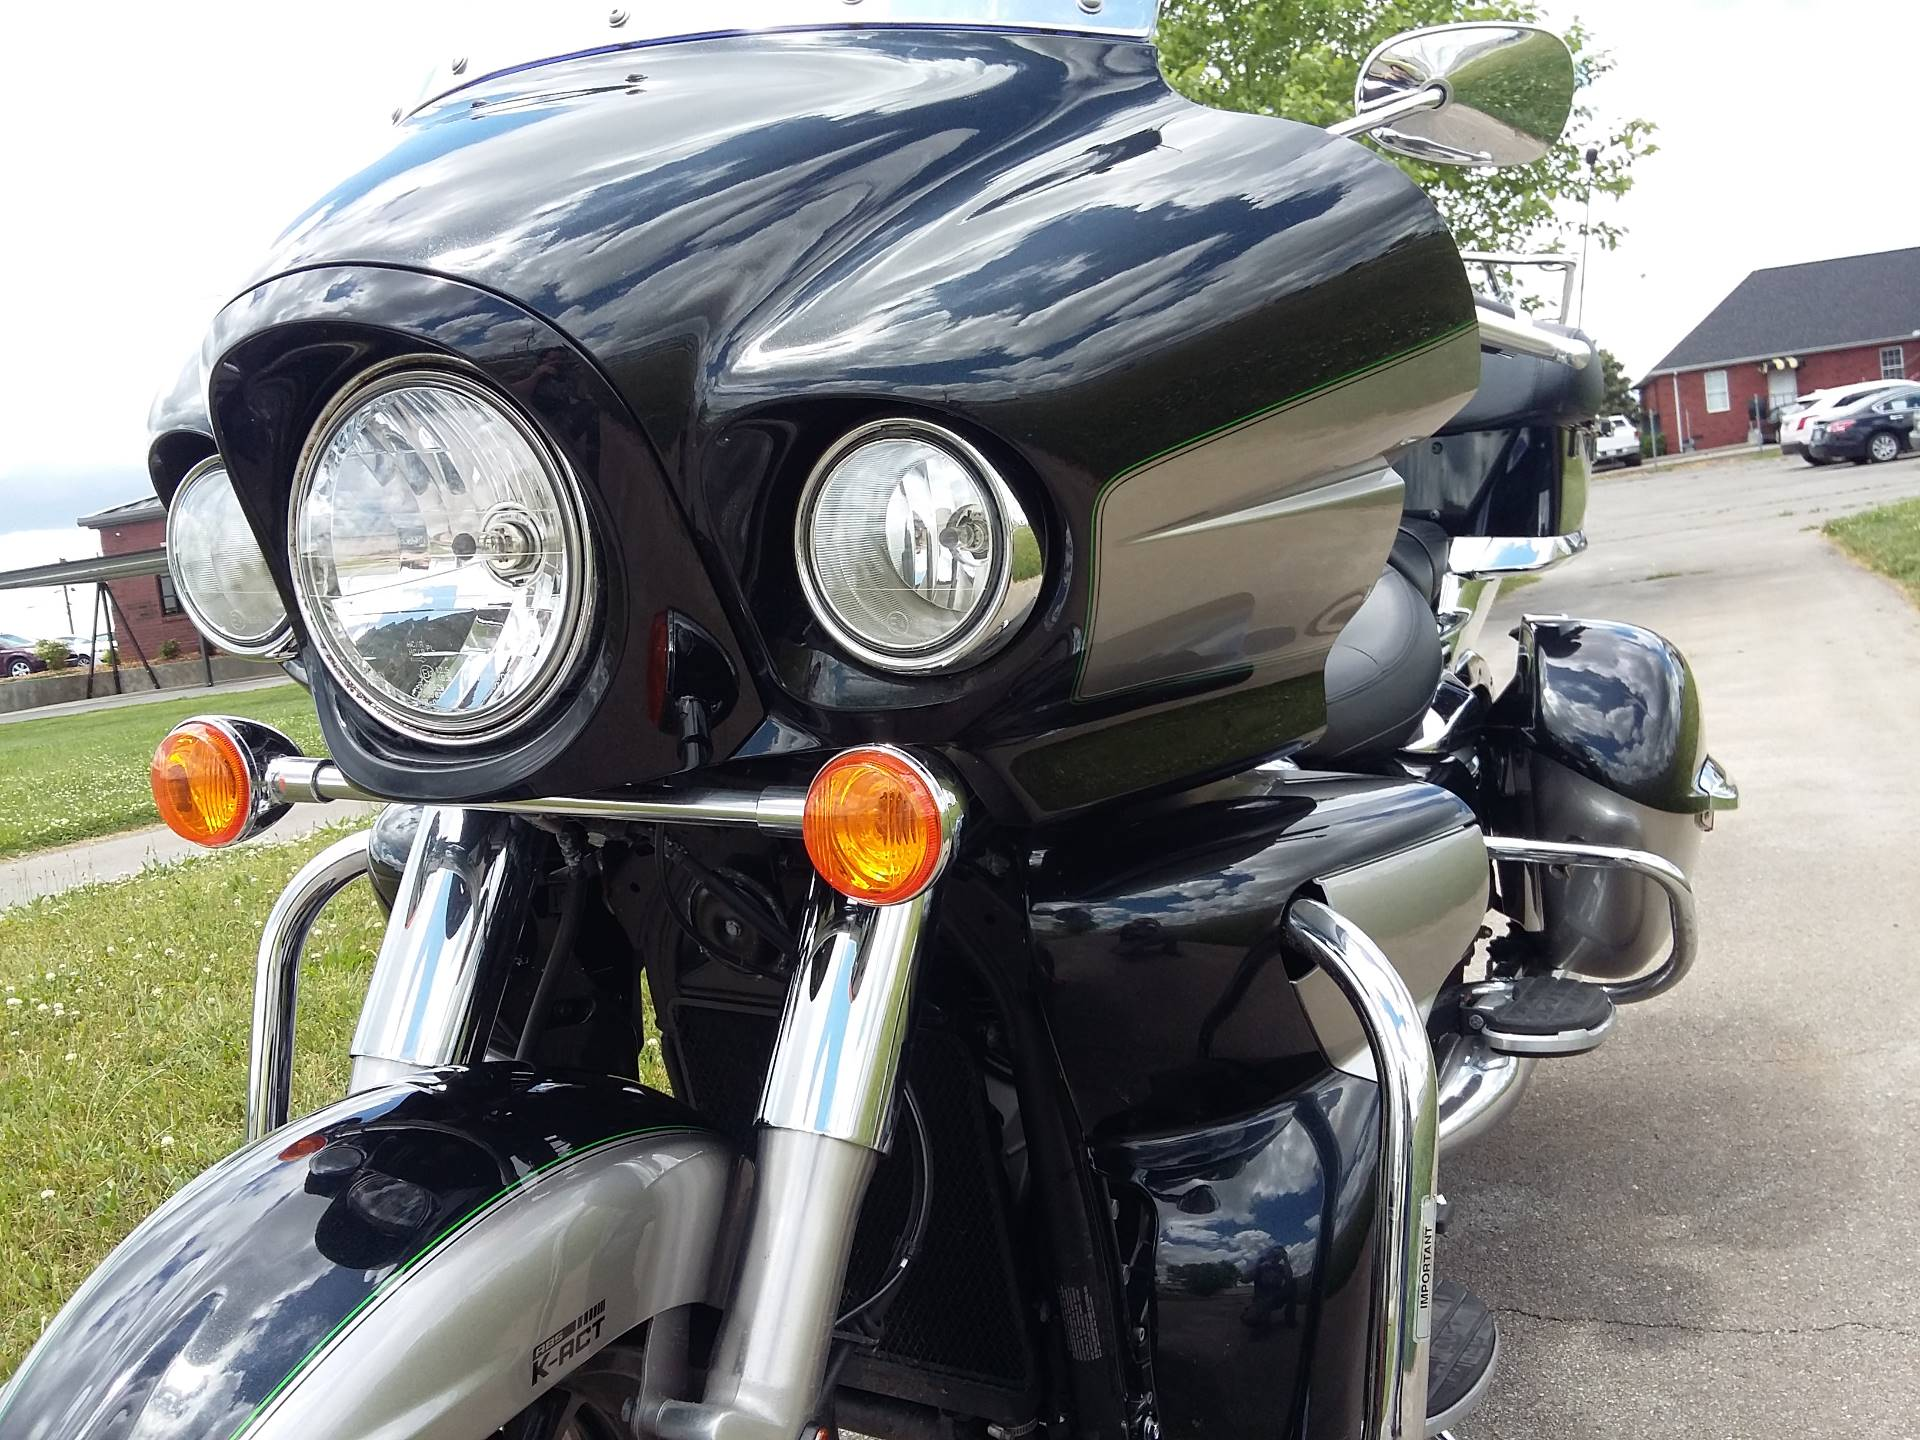 2016 Kawasaki Vulcan 1700 Voyager ABS in Winchester, Tennessee